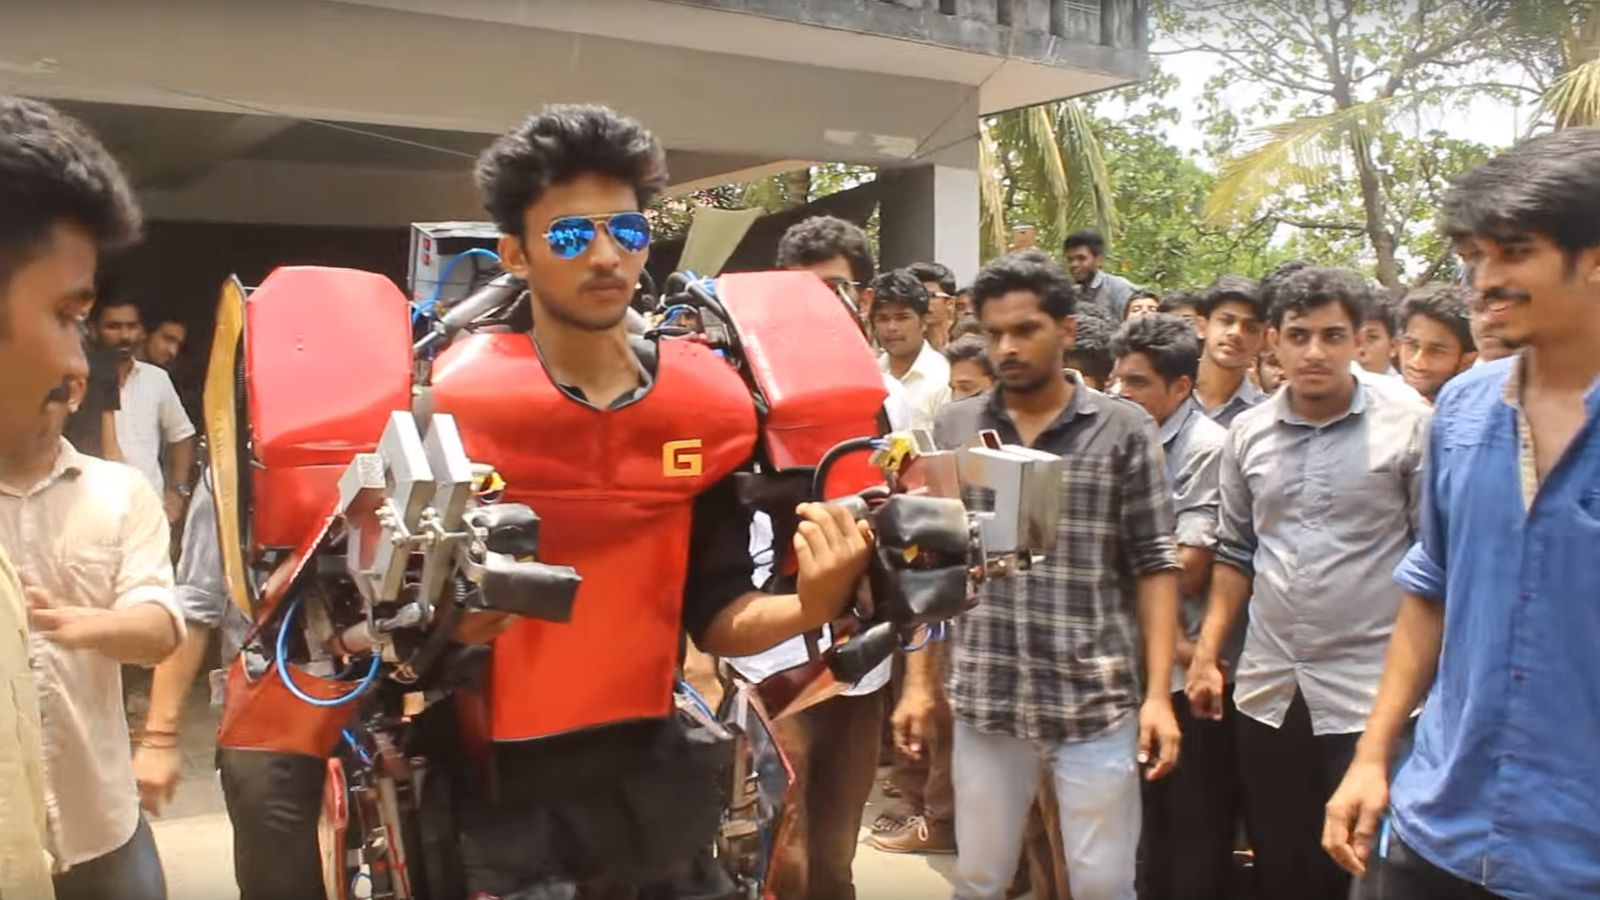 Indian Engineering Students Build An Ironman Suit For Just $750